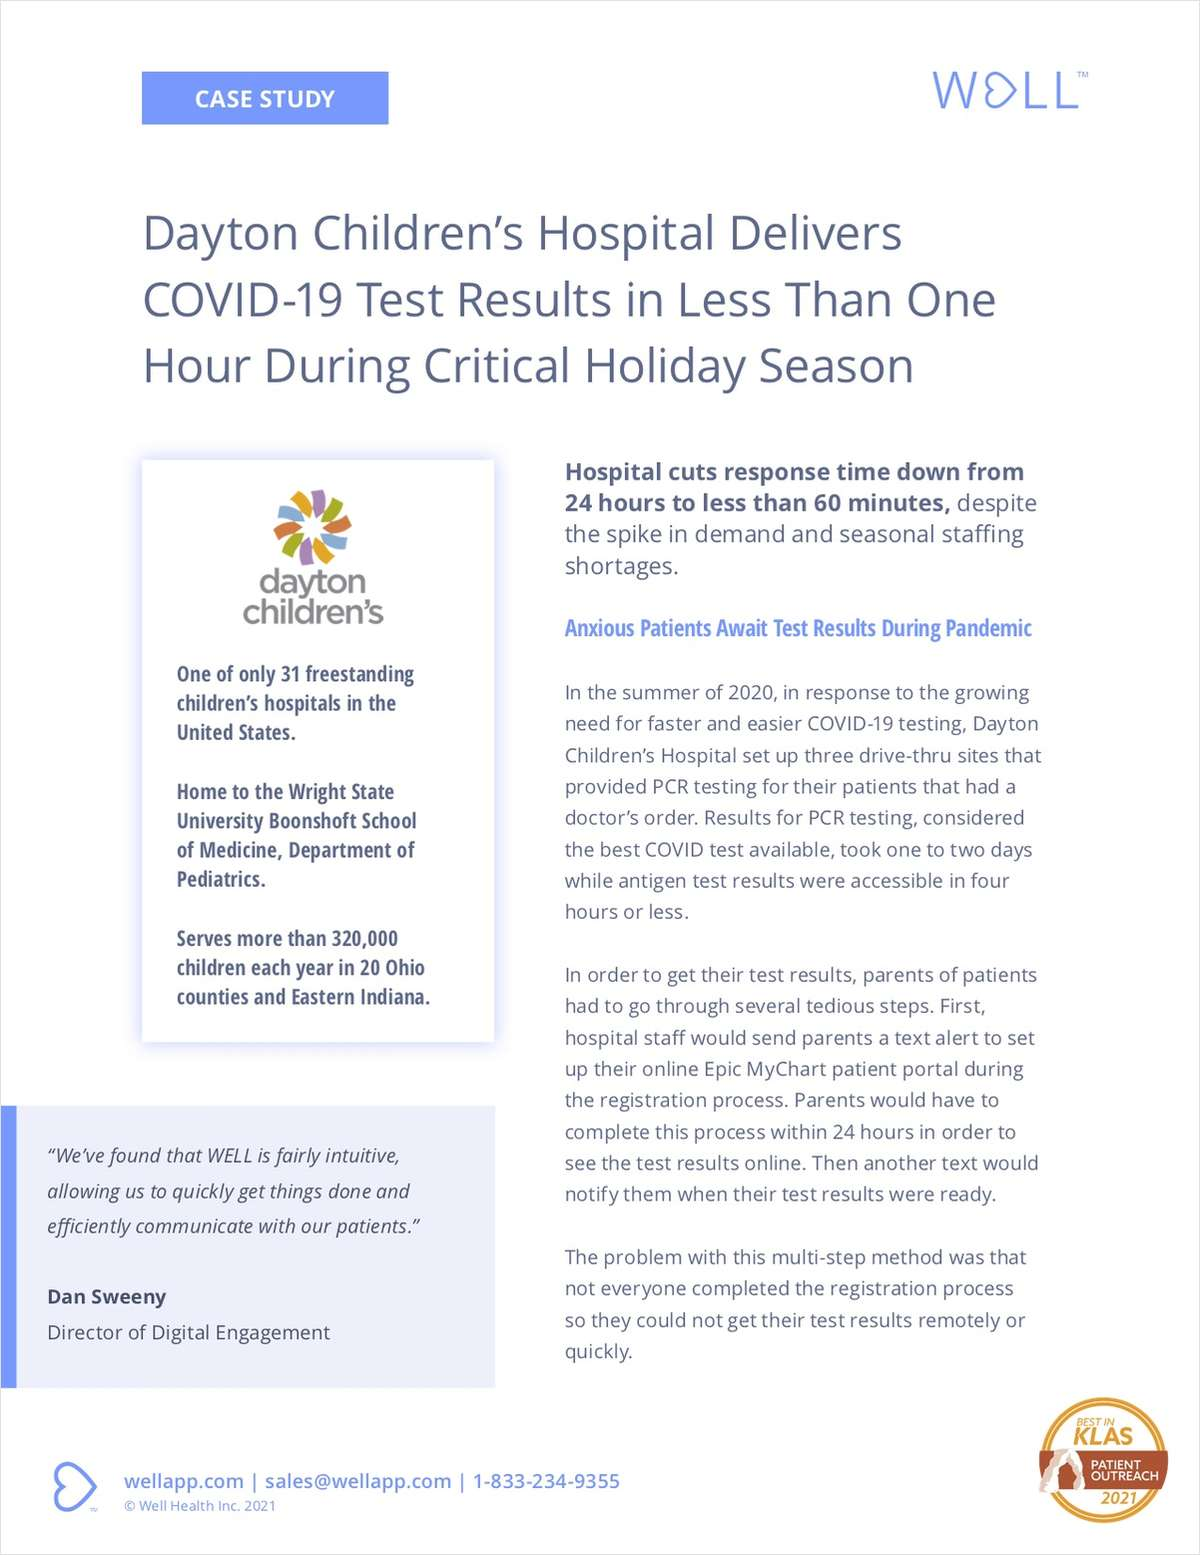 WELL™ Enables Dayton Children's to Deliver COVID Results in One Hour